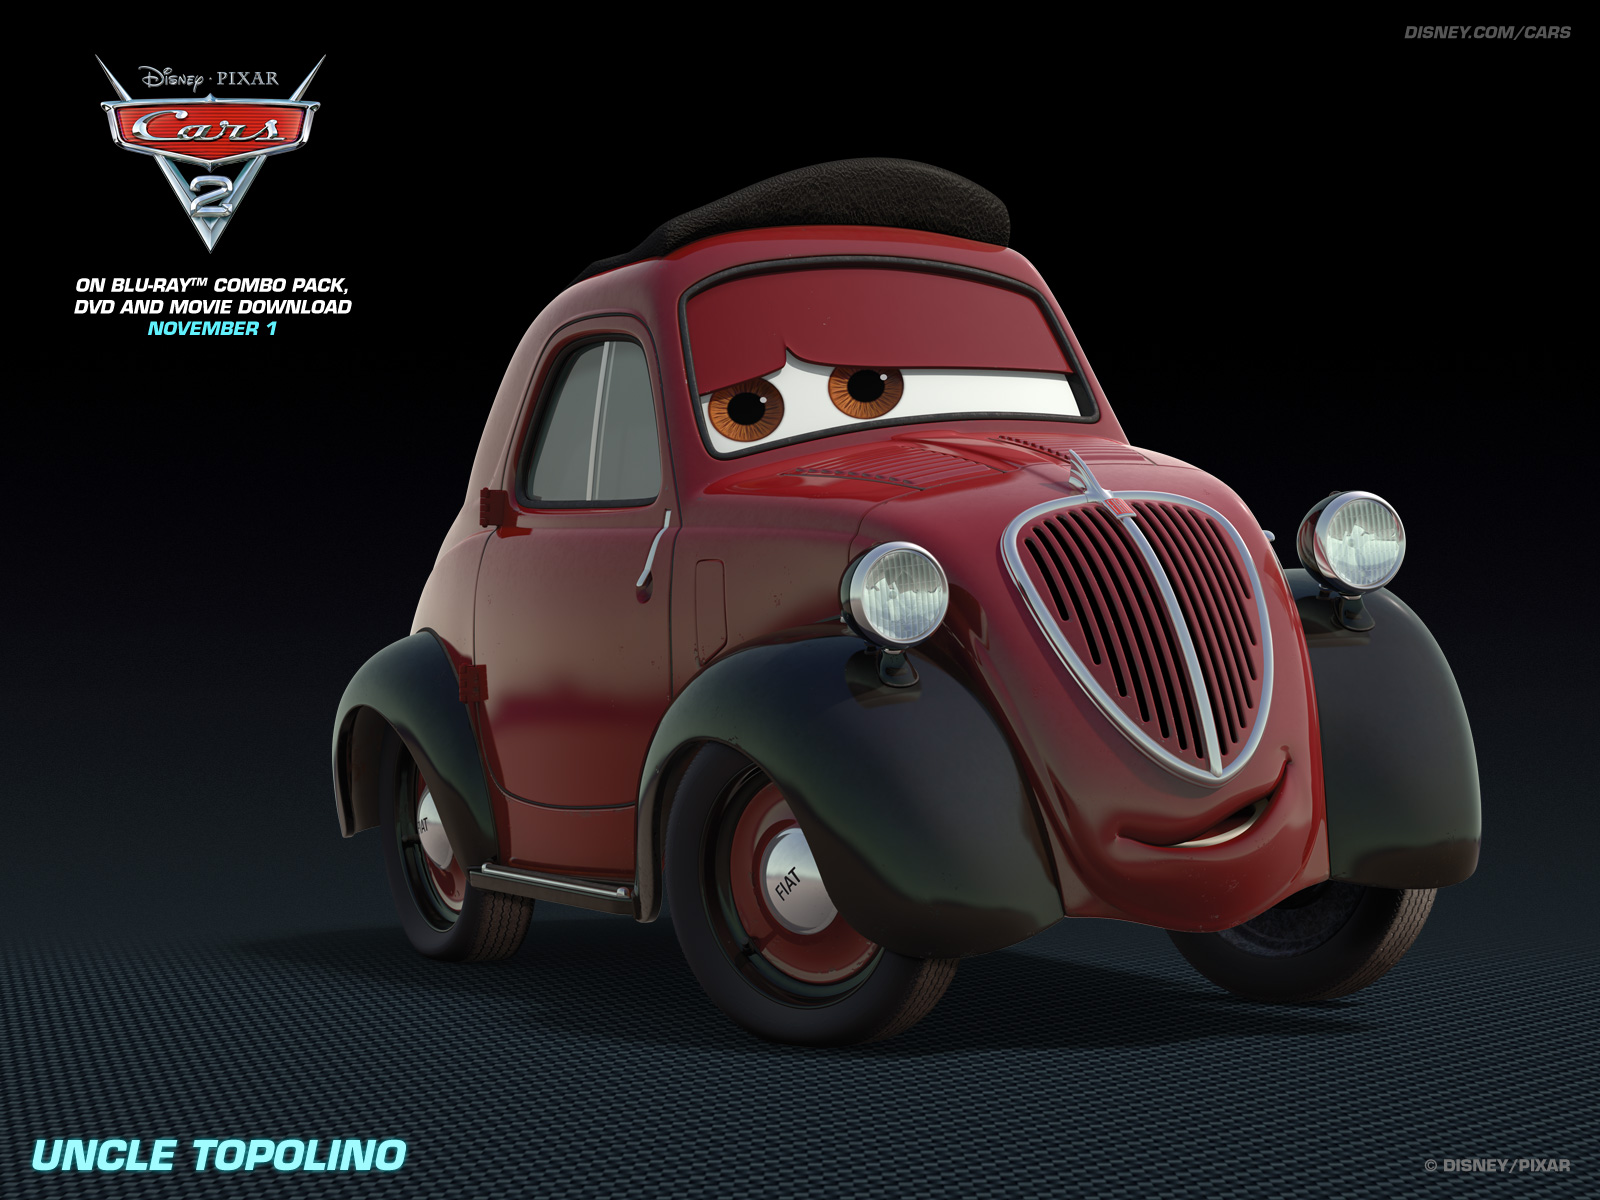 Umcle Topolino   Disney Pixar Cars 2 Wallpaper 28400632 1600x1200